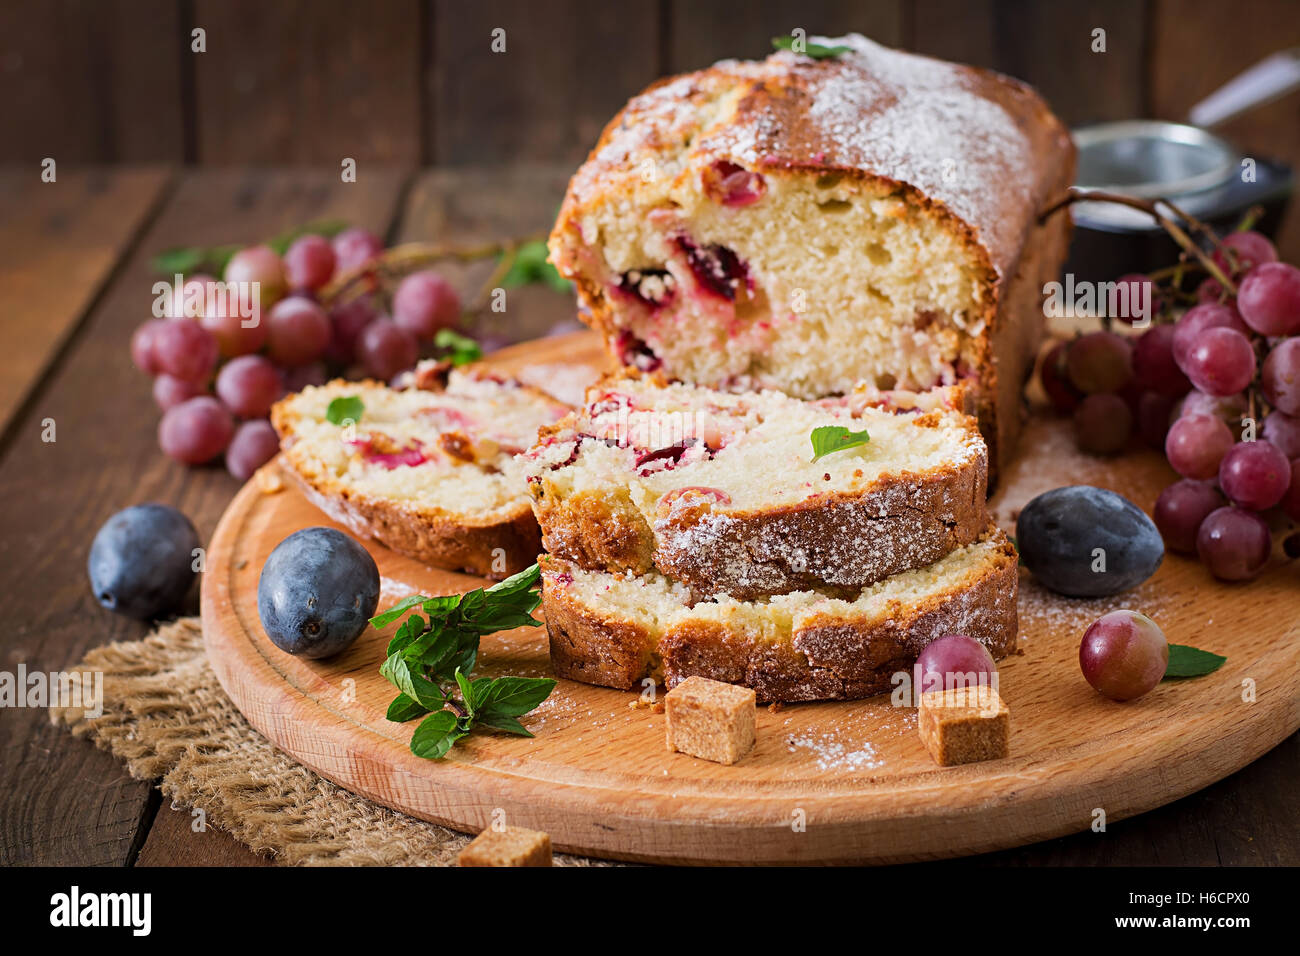 Juicy and tender cupcake with plums and grapes - Stock Image